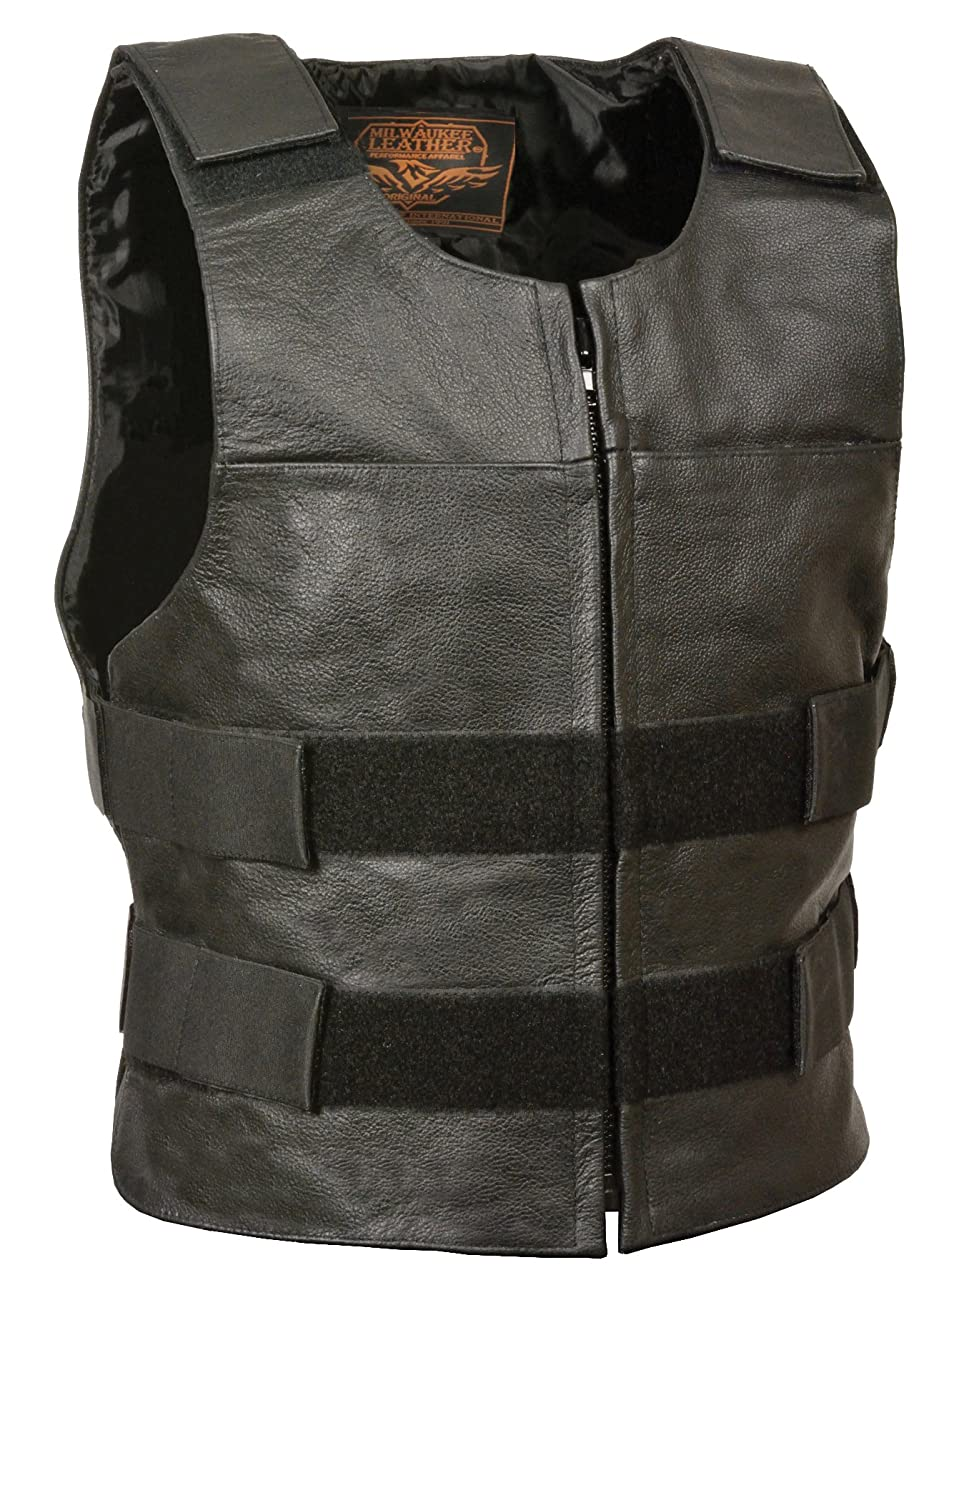 Leather King Mens Zipper Front Replica Bullet Proof Style Leather Vest Black, Size 60